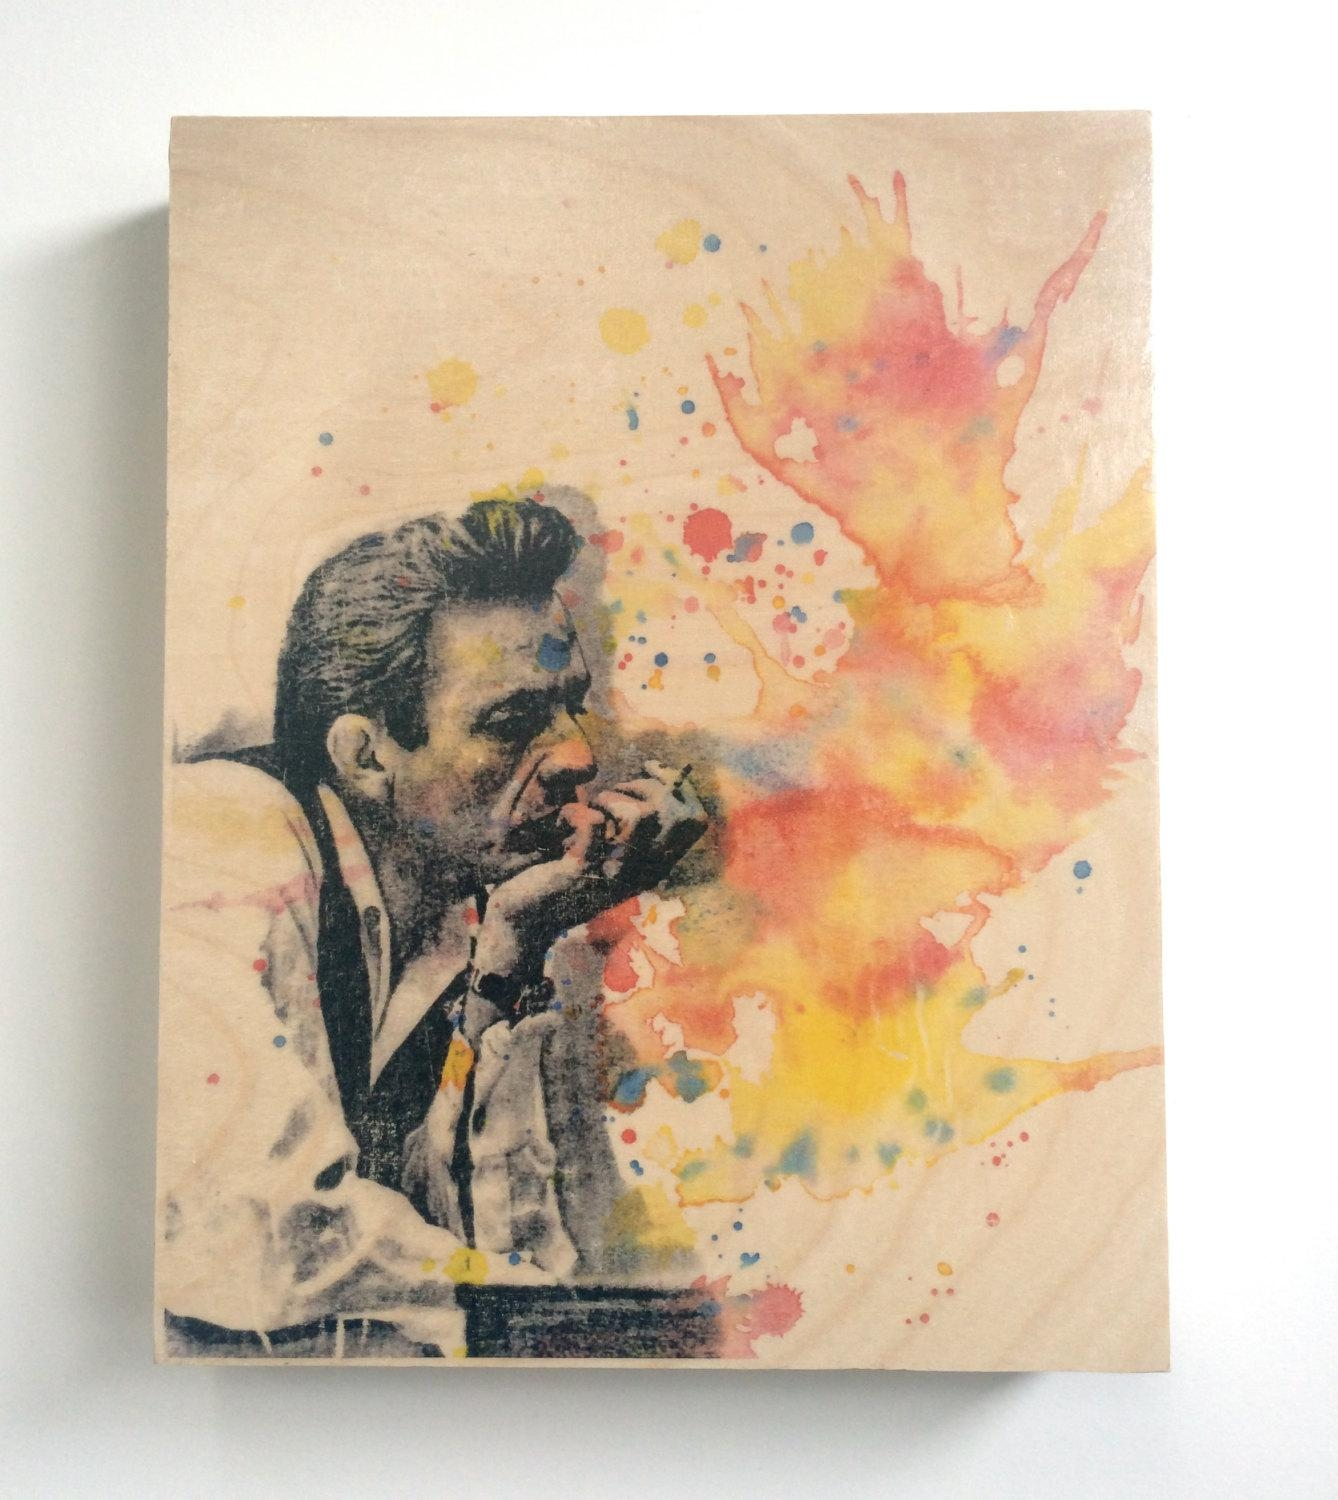 Wood Wall Art Panel Johnny Cash Art Print From Original Inside Wood Wall Art Panels (View 9 of 20)